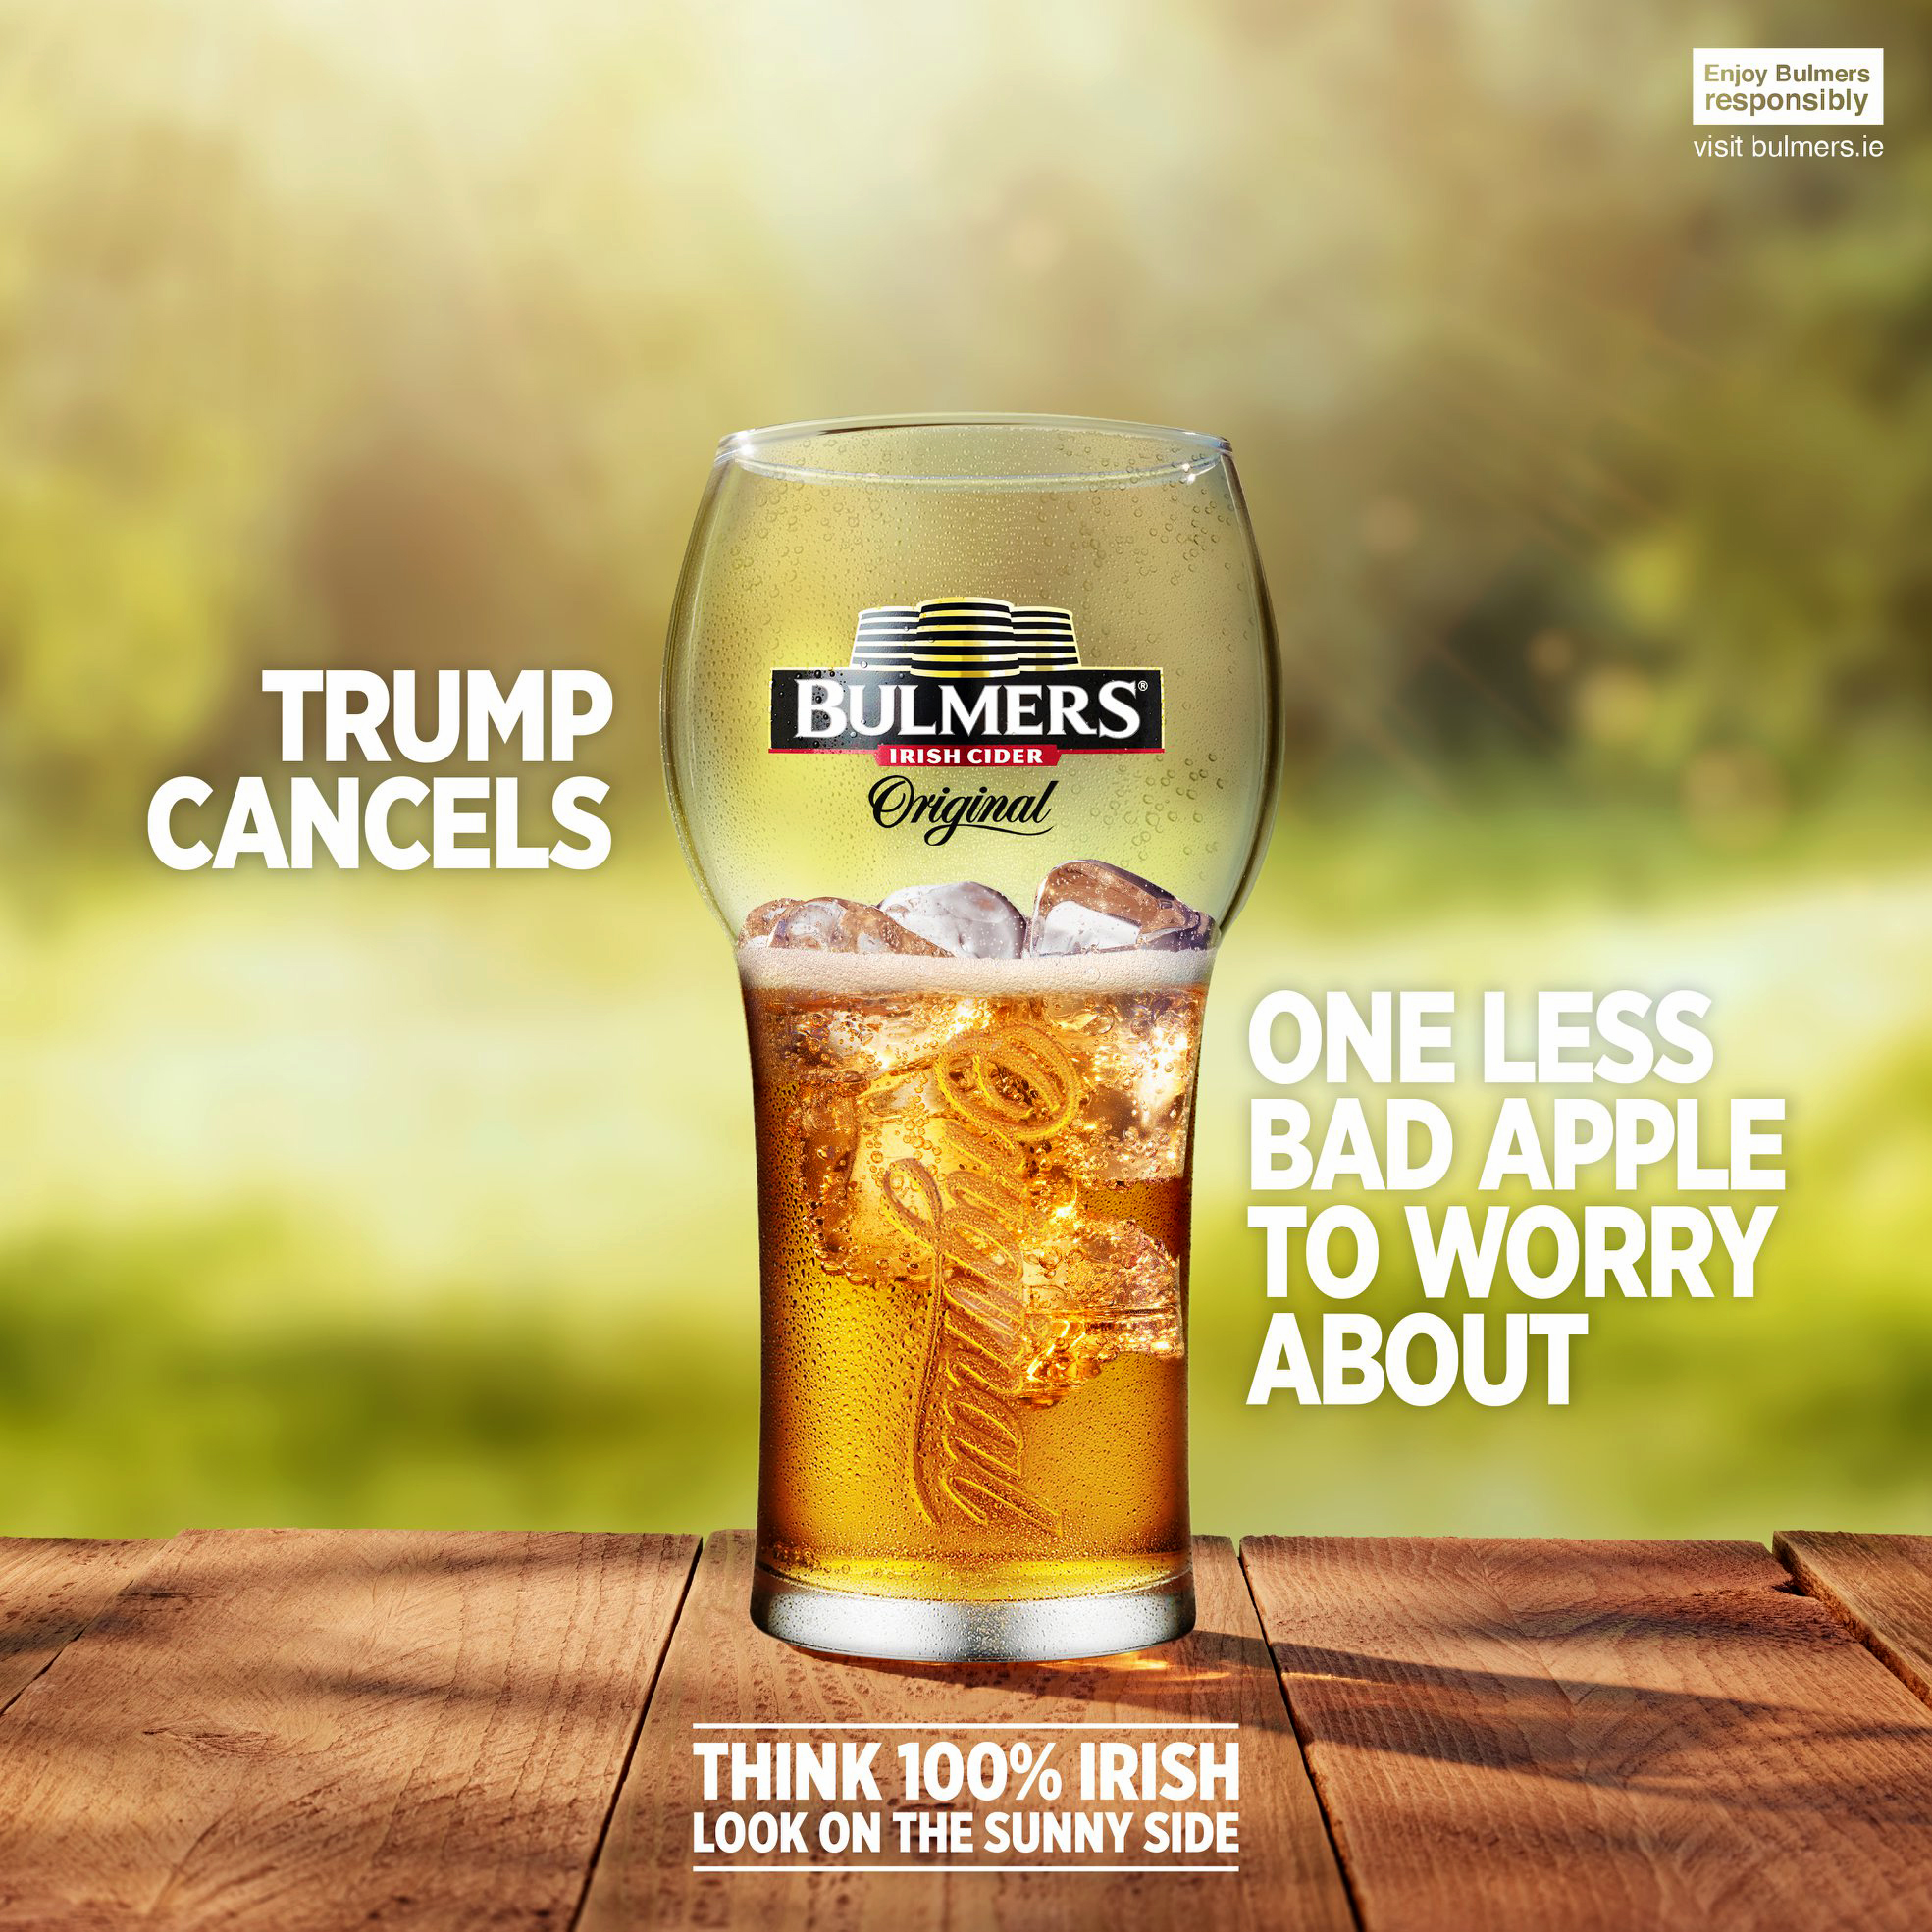 """Bulmers Irish Cider Punk Trump On Cancelled Ireland Visit """"One Less Bad Apple To Worry About"""""""